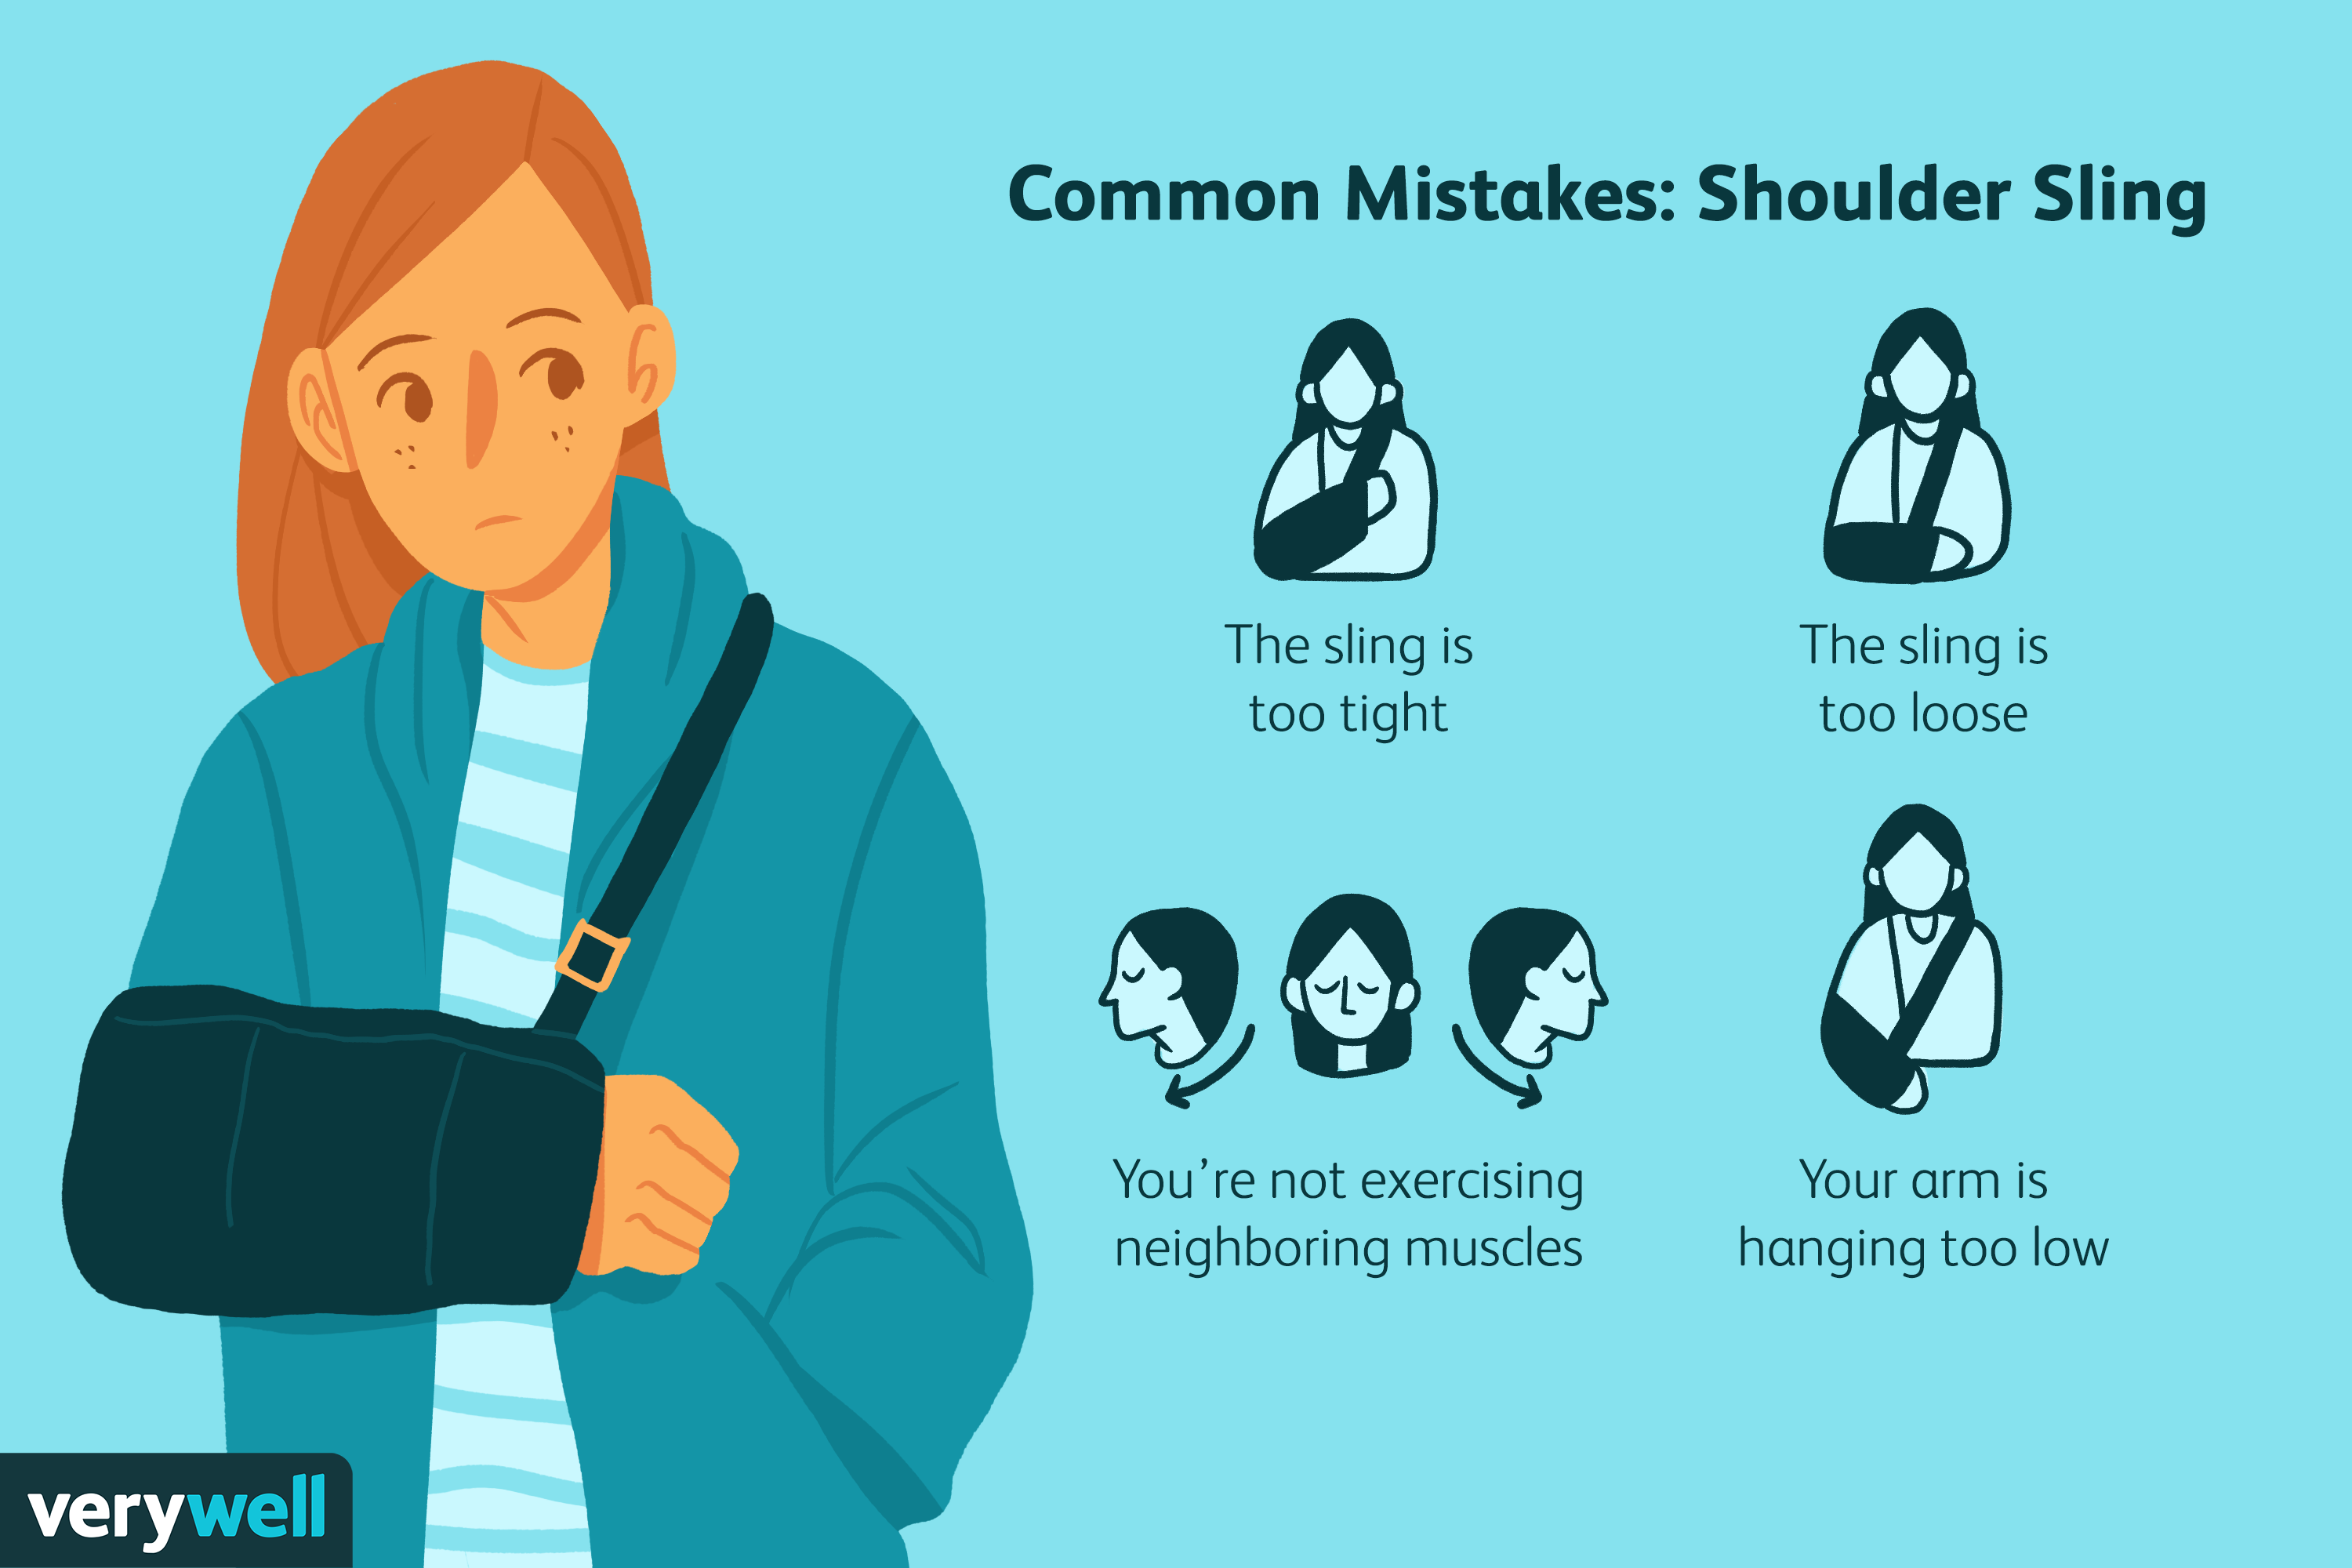 Common Mistakes For Wearing a Shoulder Sling